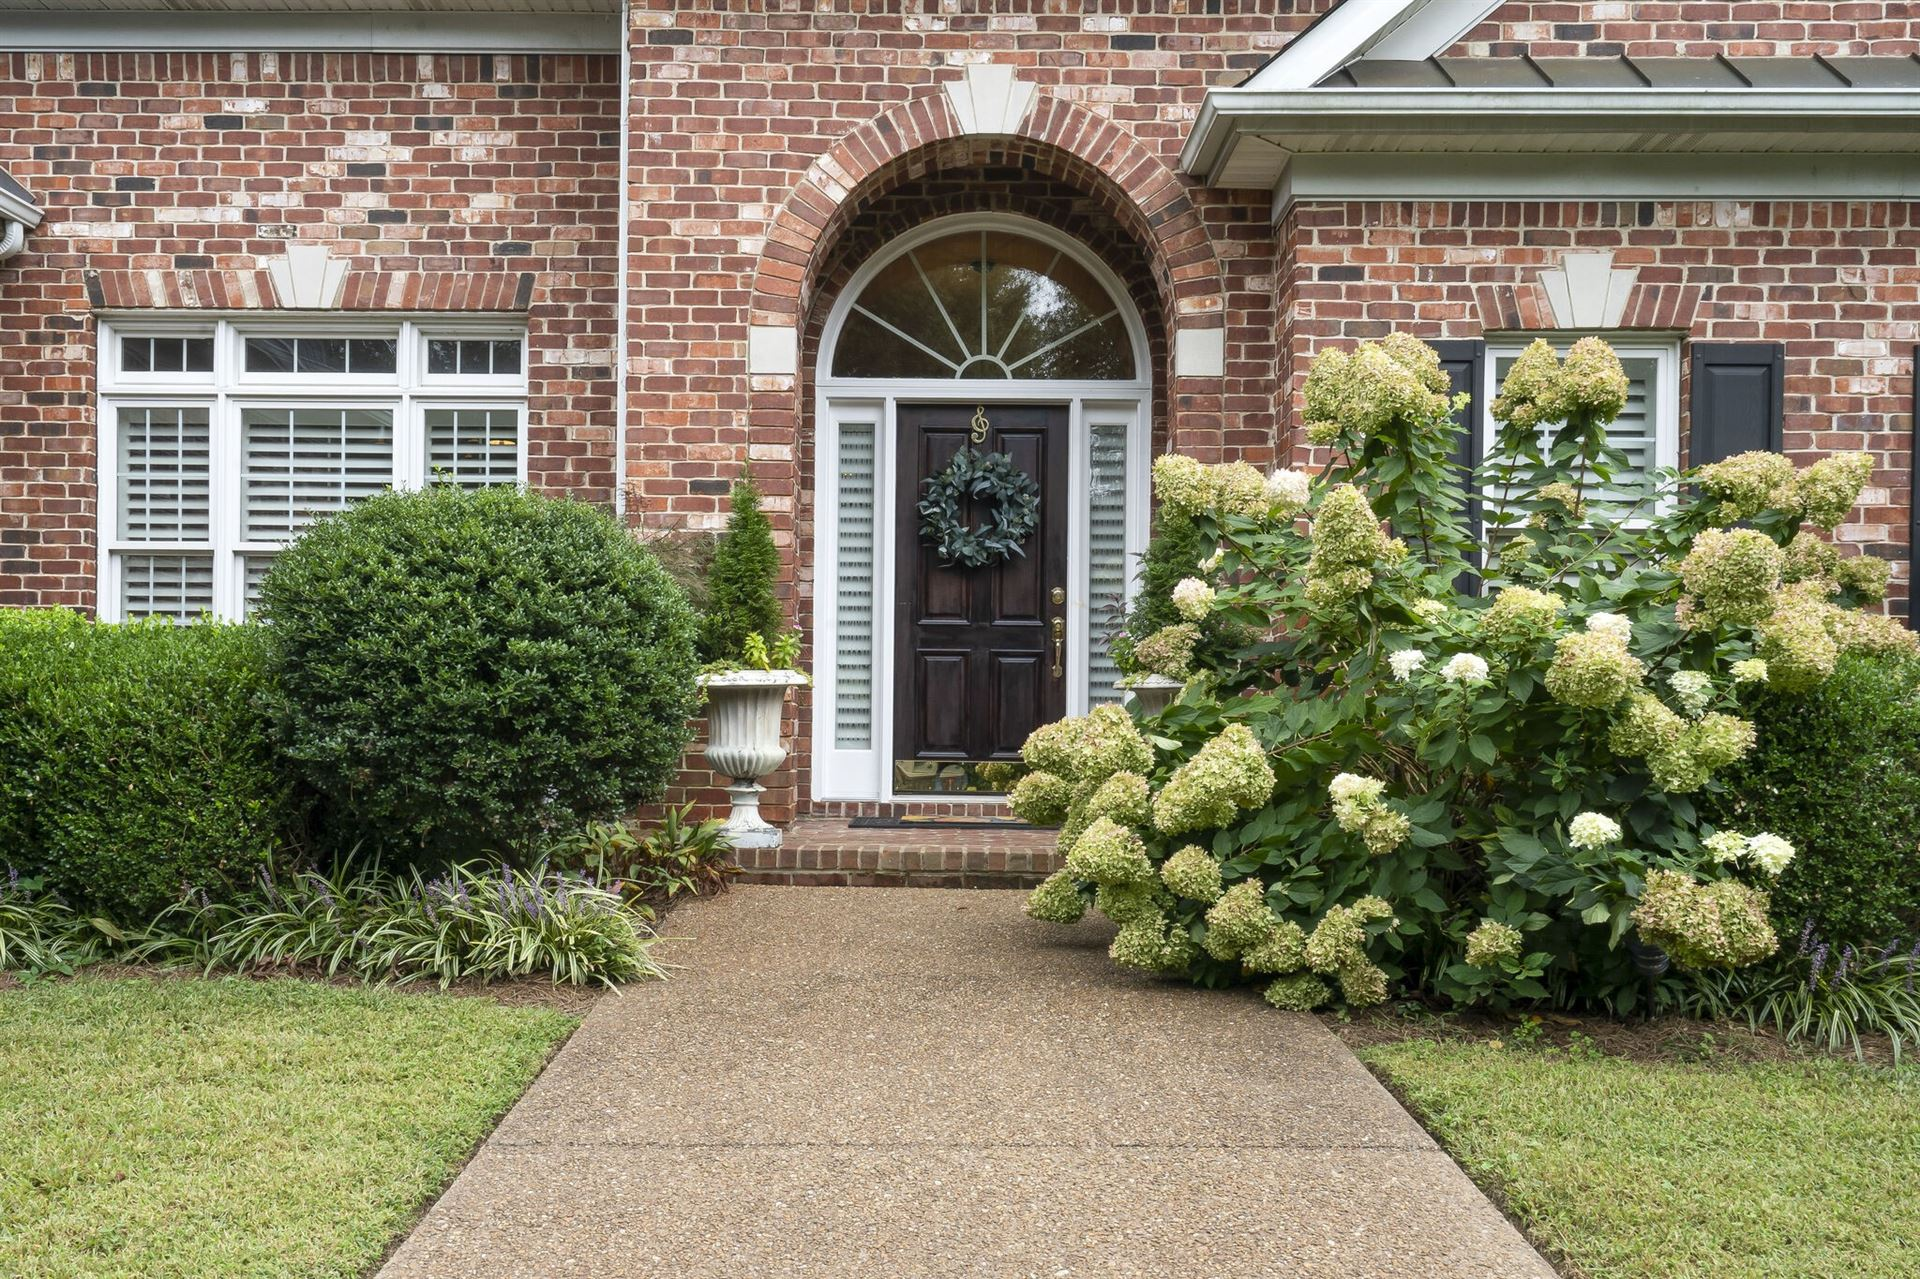 Photo of 534 Hope Ave, Franklin, TN 37067 (MLS # 2193160)